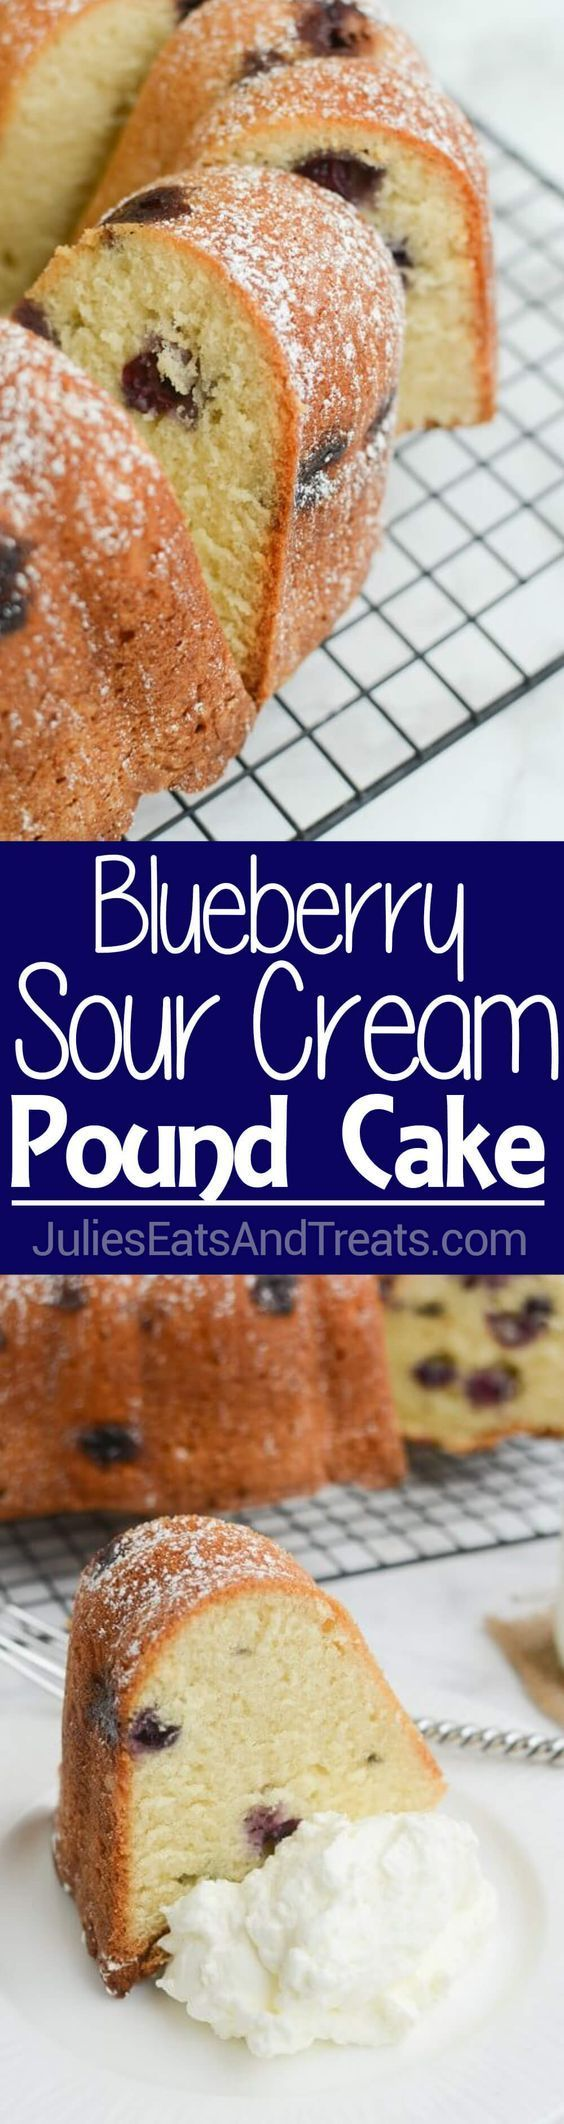 Blueberry Sour Cream Pound Cake Recipe ~ This Easy Dessert Is Perfectly Moist and Soft! Stuffed with Juicy Blueberries and Dusted with Powdered Sugar! ~ www.julieseatsand...